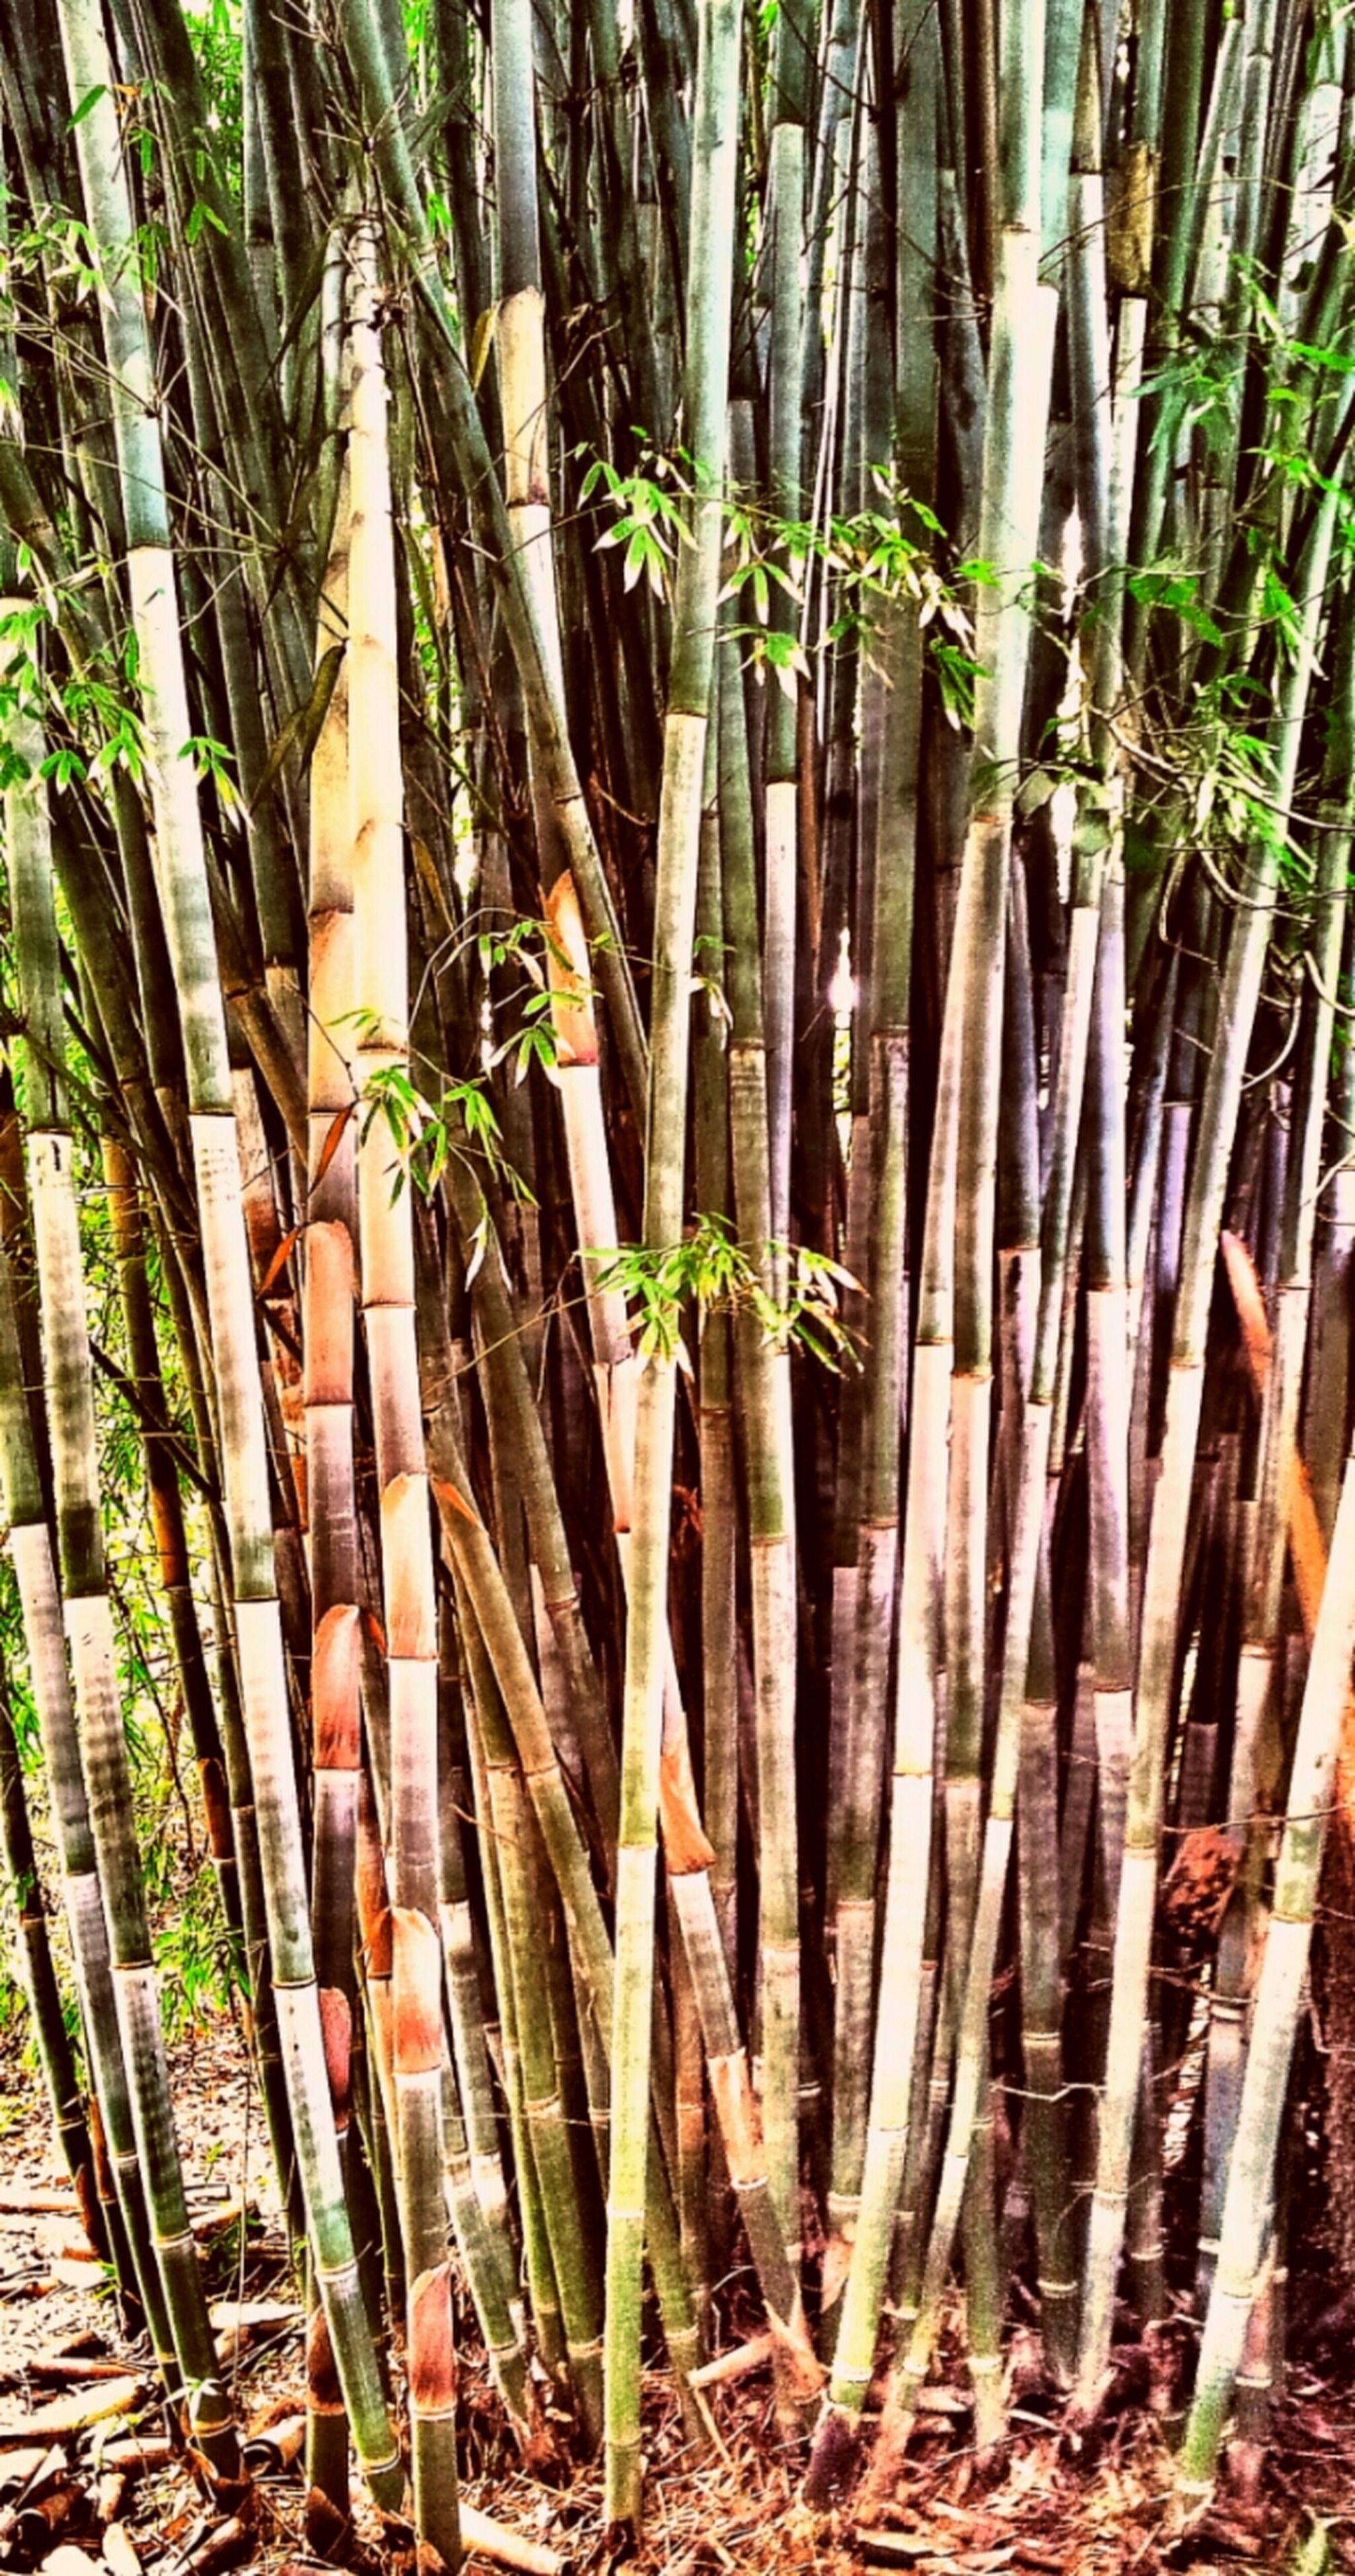 growth, tree trunk, tree, plant, wood - material, full frame, backgrounds, nature, forest, day, abundance, no people, fence, outdoors, leaf, green color, wooden, tranquility, bamboo, wood